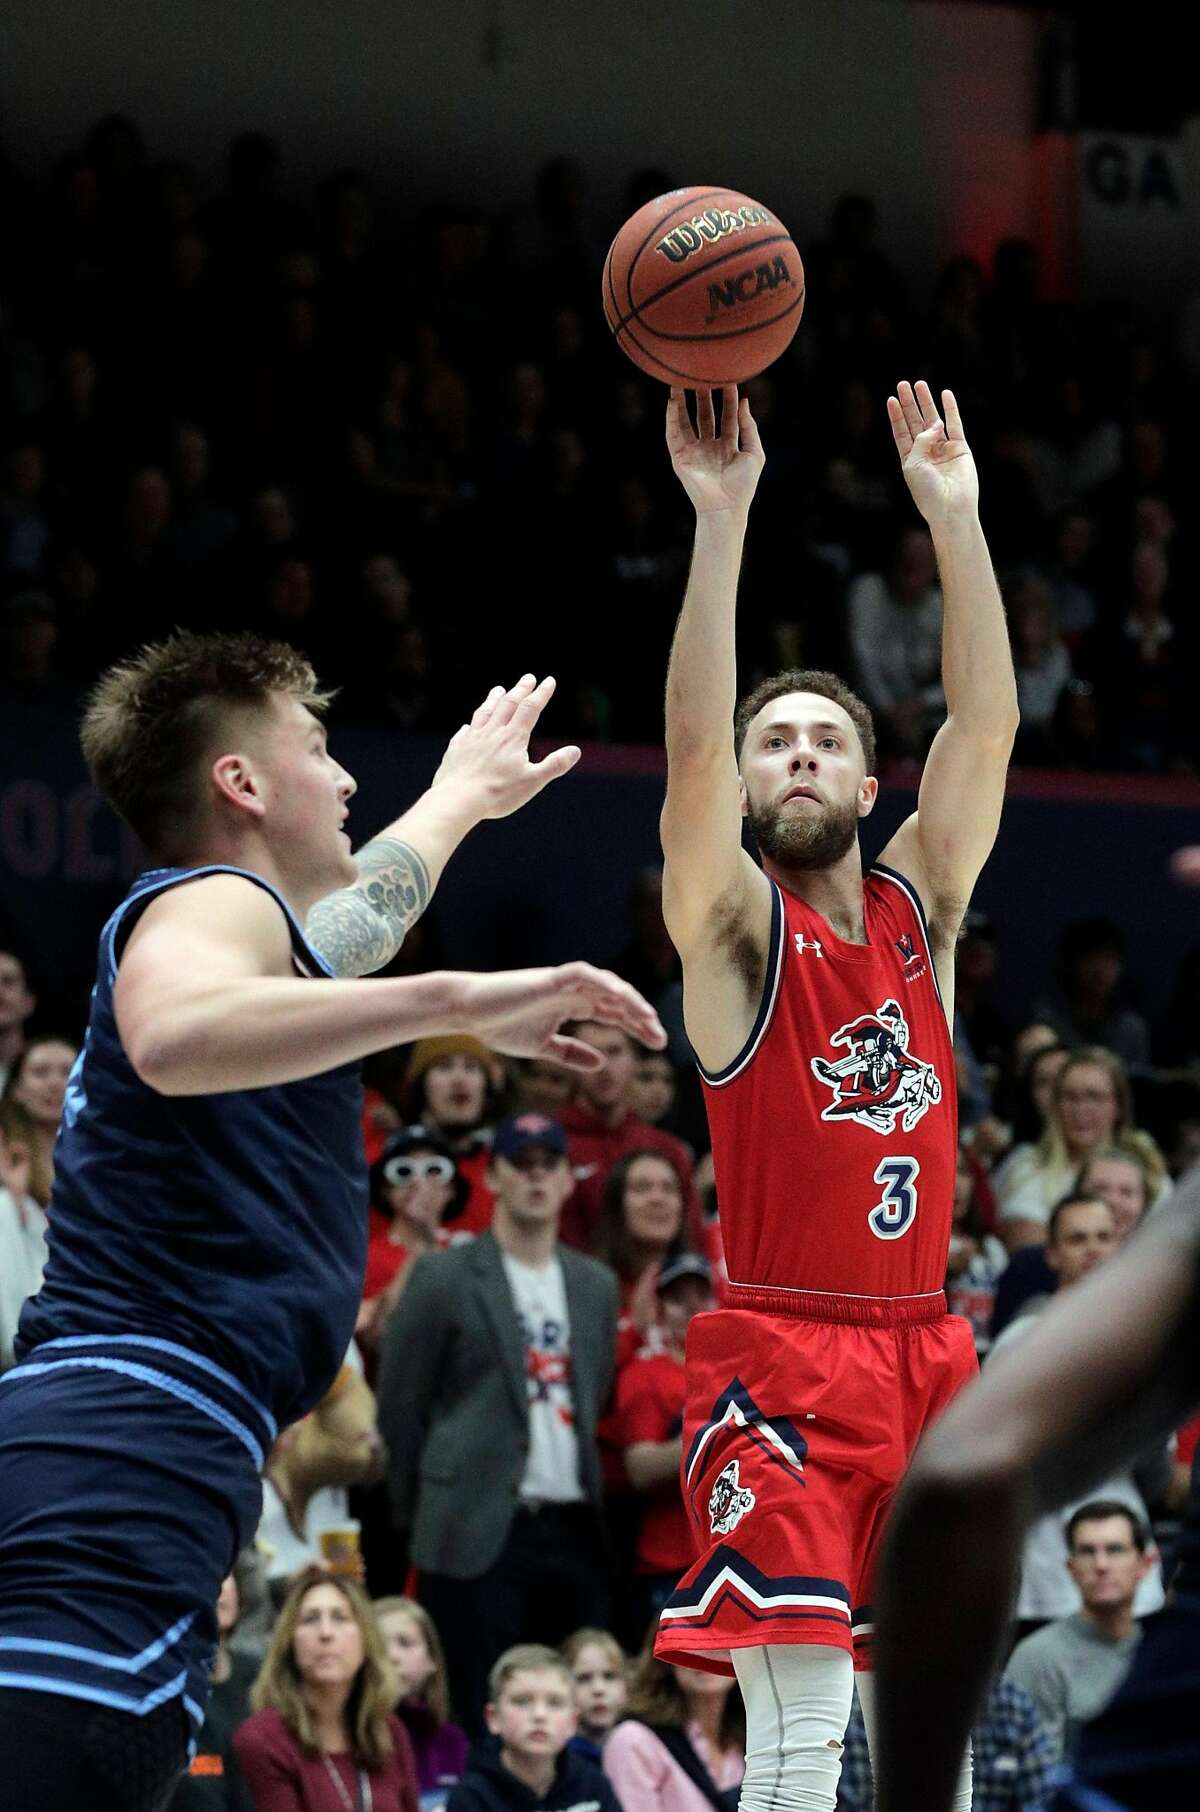 Jordan Ford (3) shoots over Alex Floresca (15) In the first half as the St. Mary's Gaels played the University of San Diego Toreros at McKeon Pavilion in the Gael's final home game in Moraga, Calif., on Saturday, February 22, 2020.